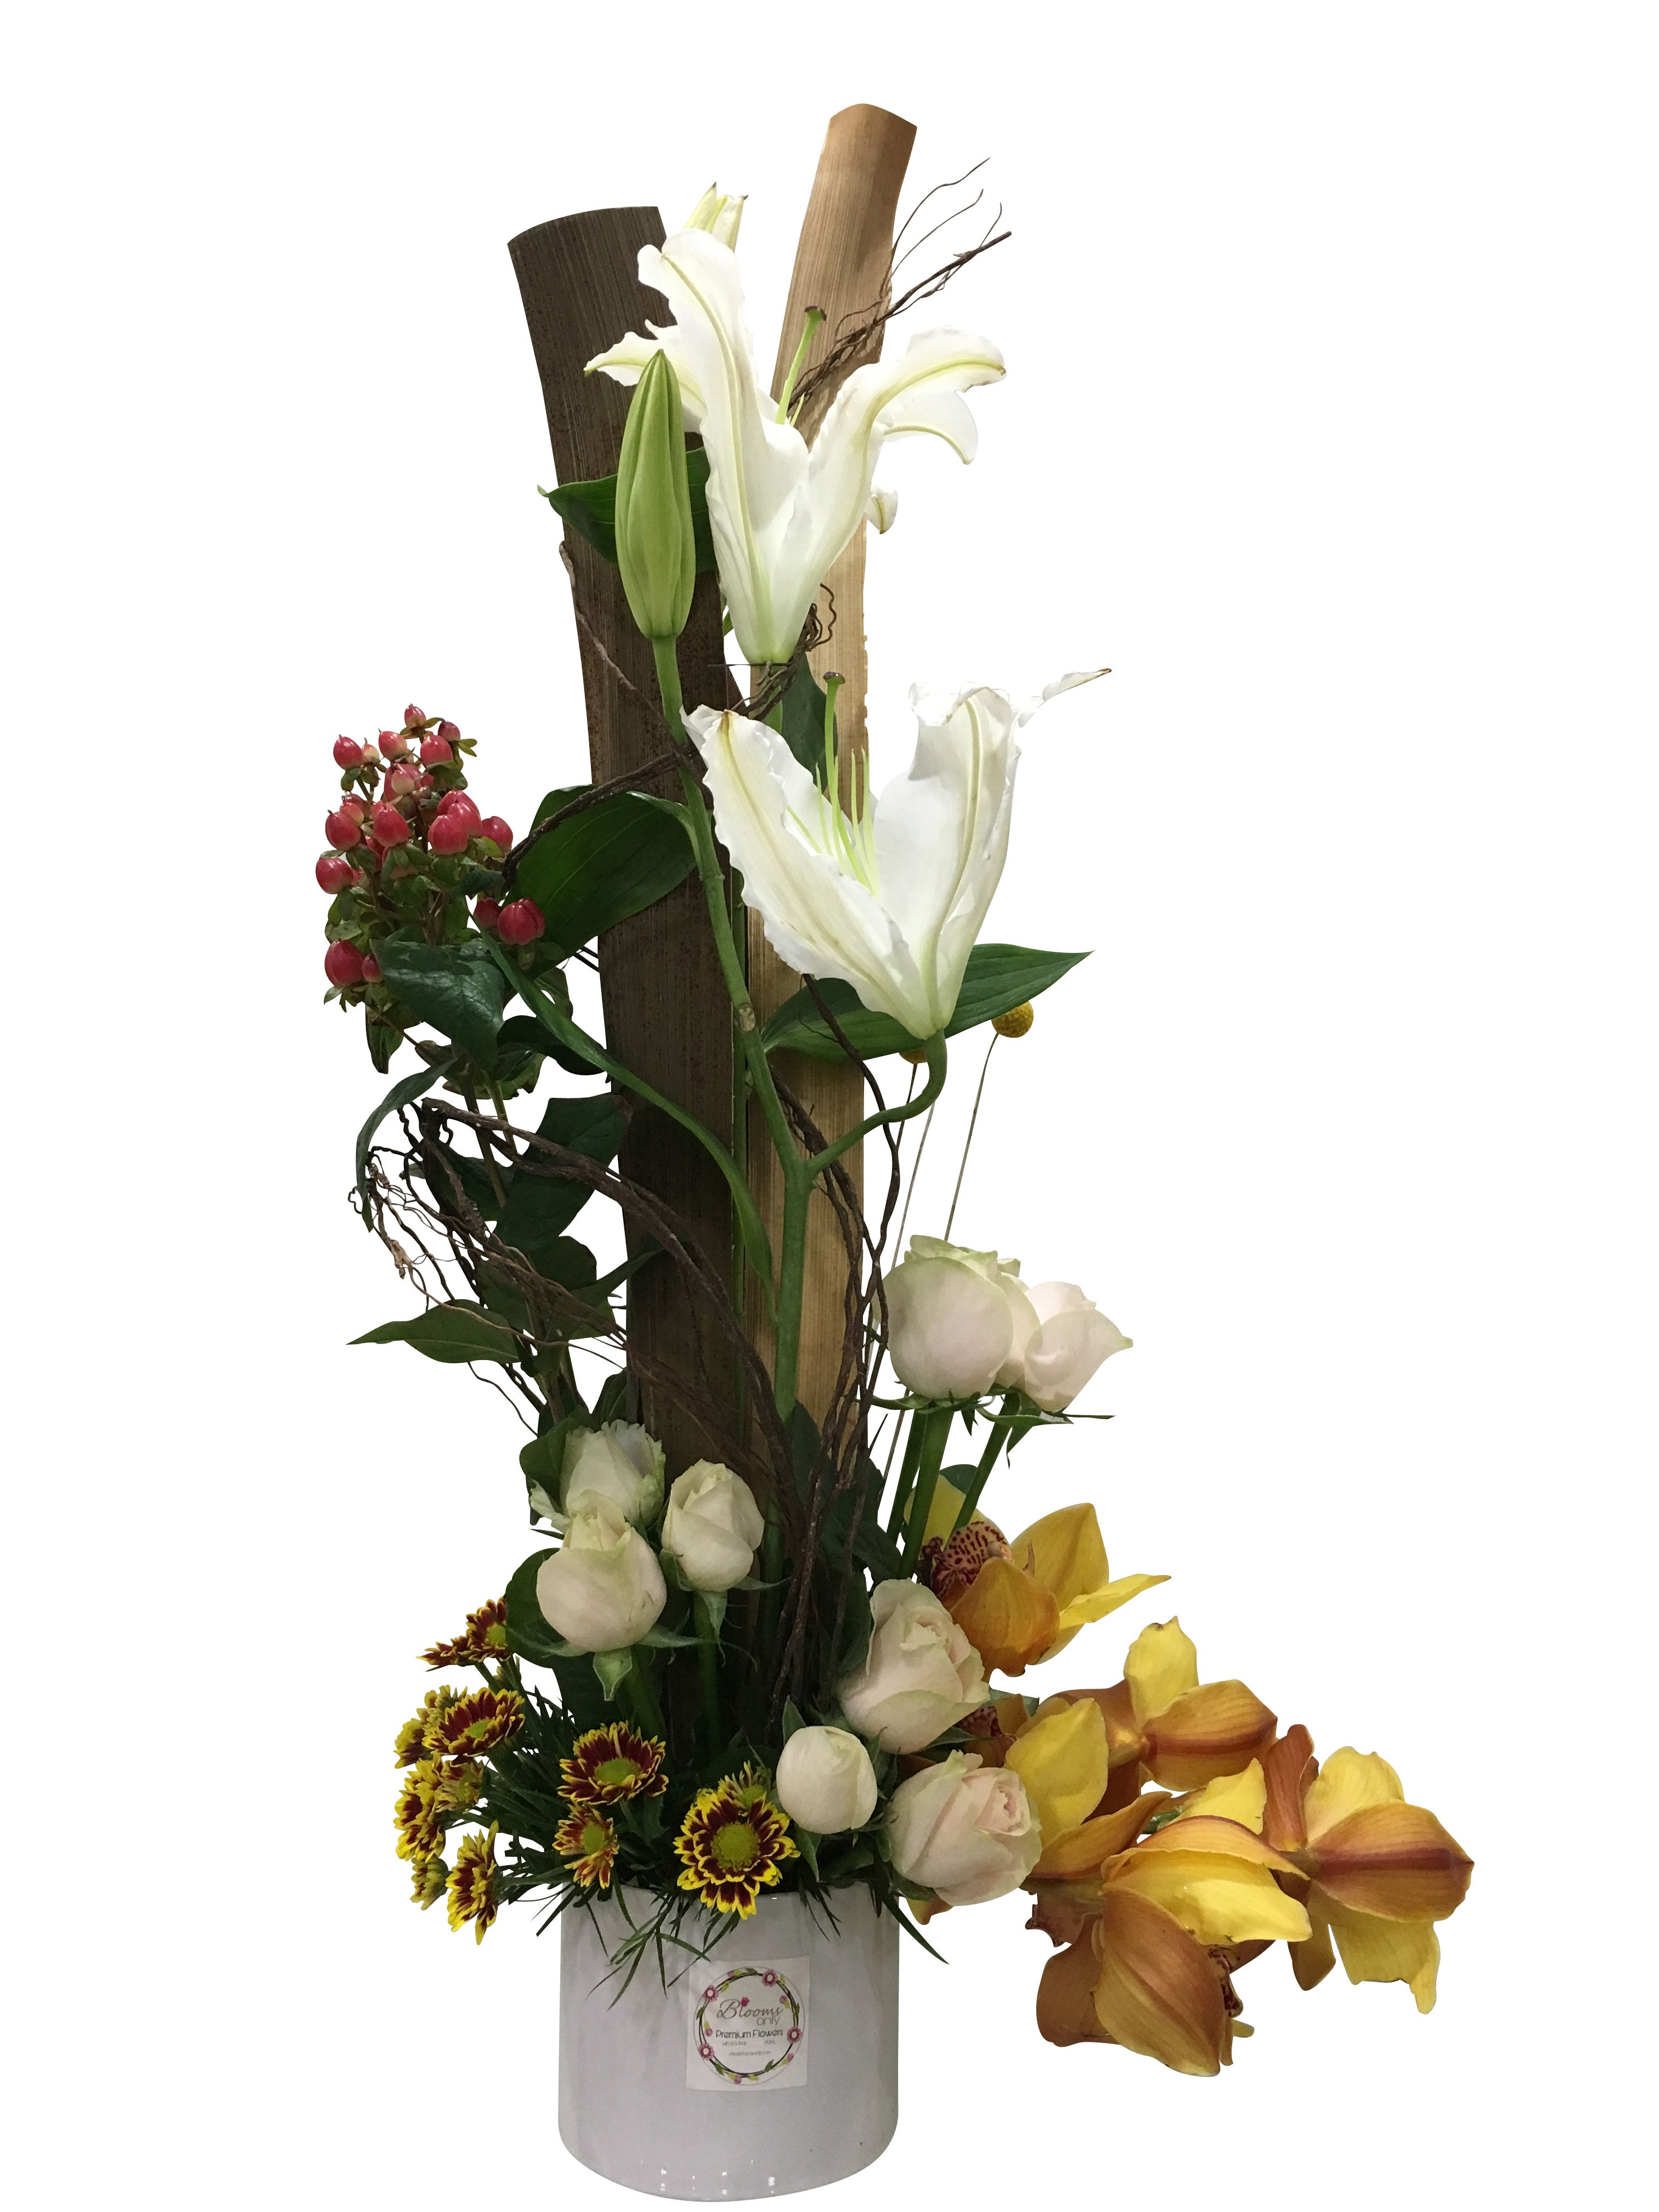 6 Principles of Floral Design For Creating